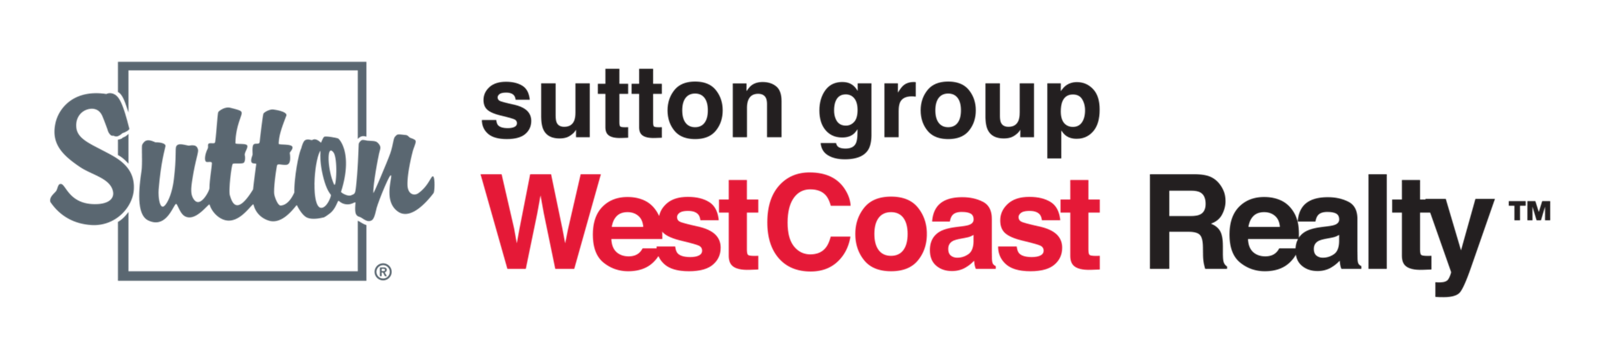 Shali Tark Sutton Group Logo